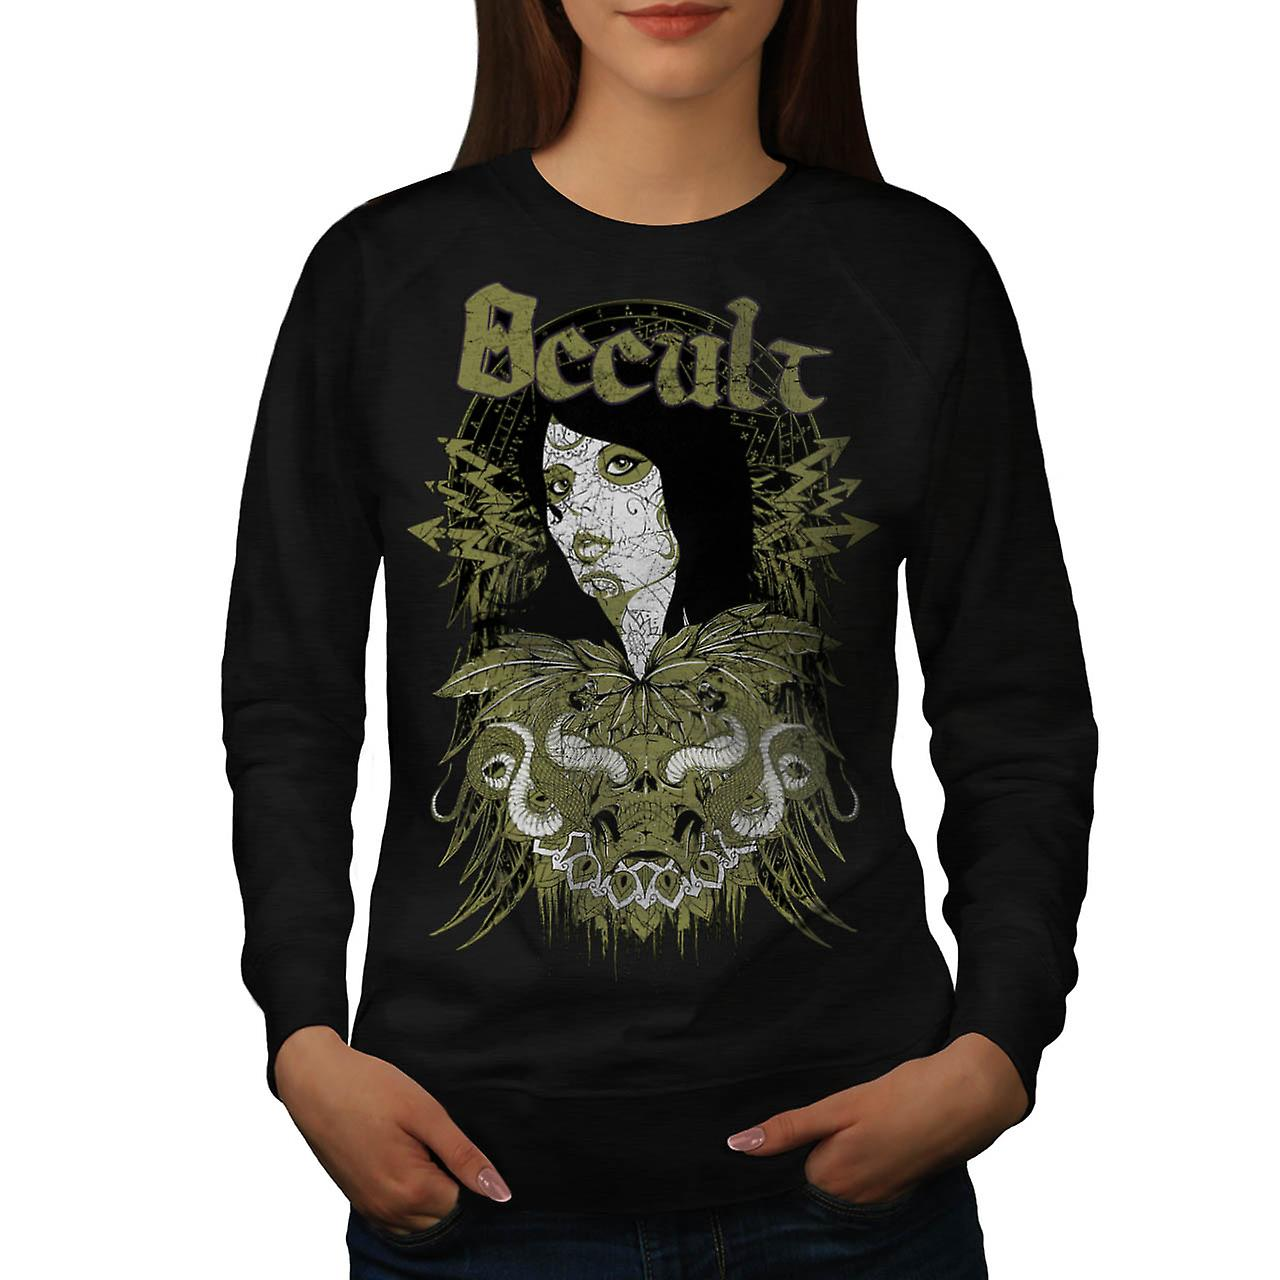 Occult Cult Lady Girl Pout Model Women Black Sweatshirt | Wellcoda